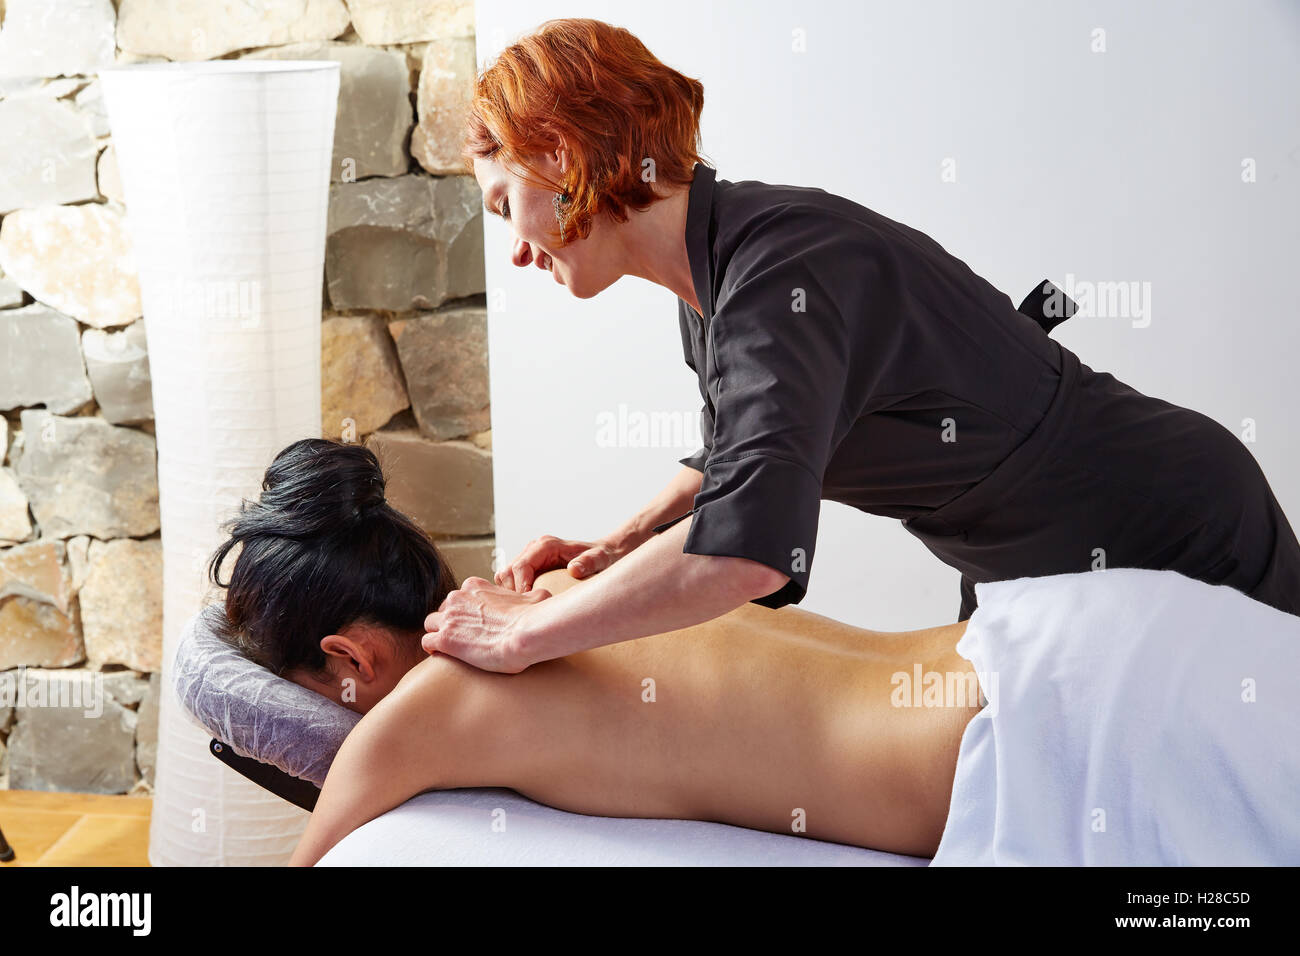 massage in woman back with physiotherapist indoor - Stock Image